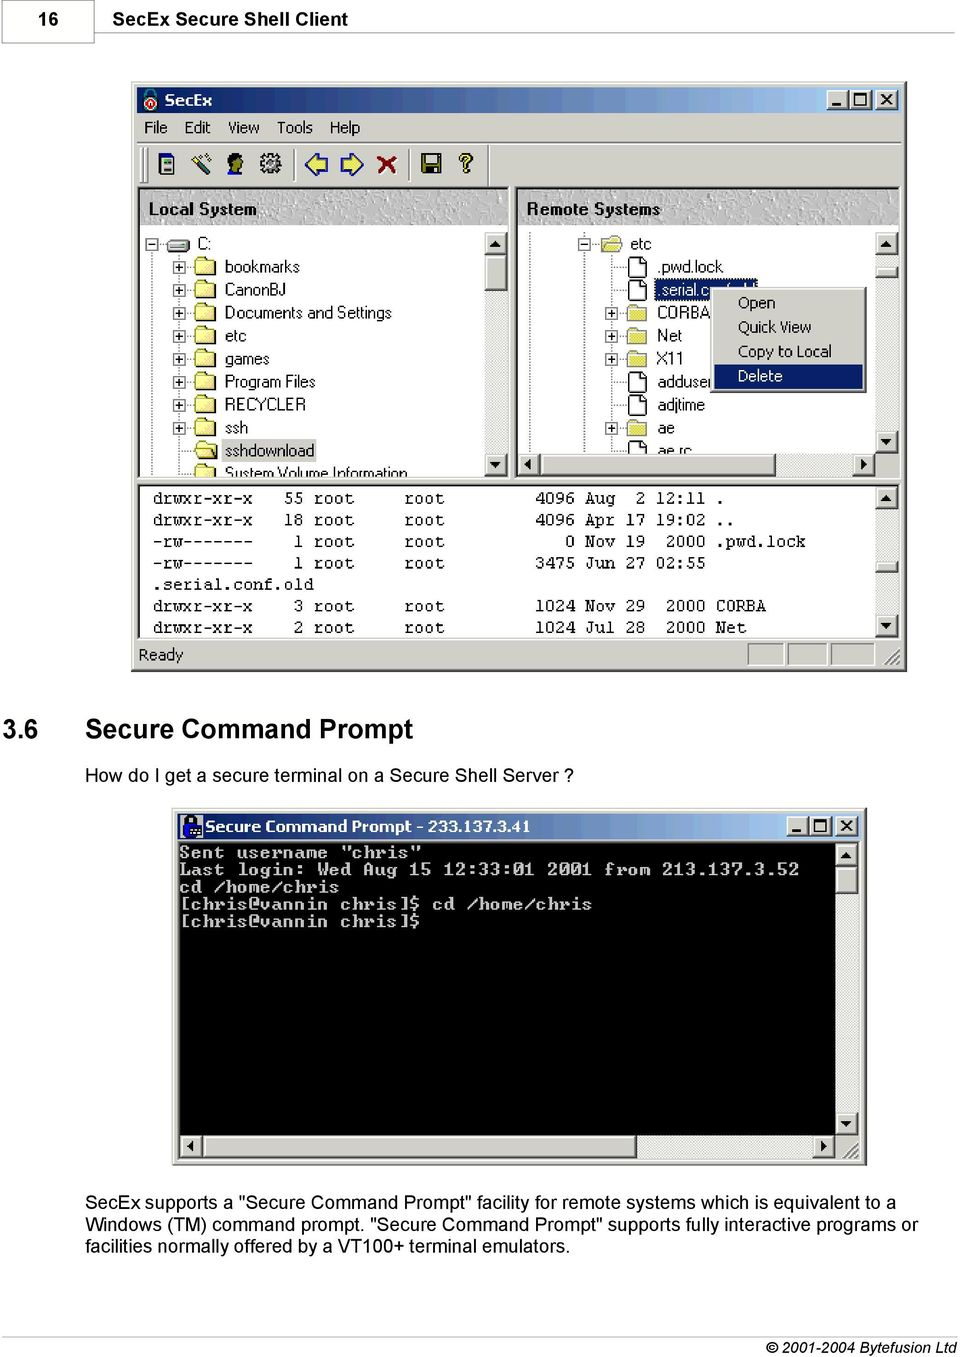 "SecEx supports a ""Secure Command Prompt"" facility for remote systems which is equivalent"